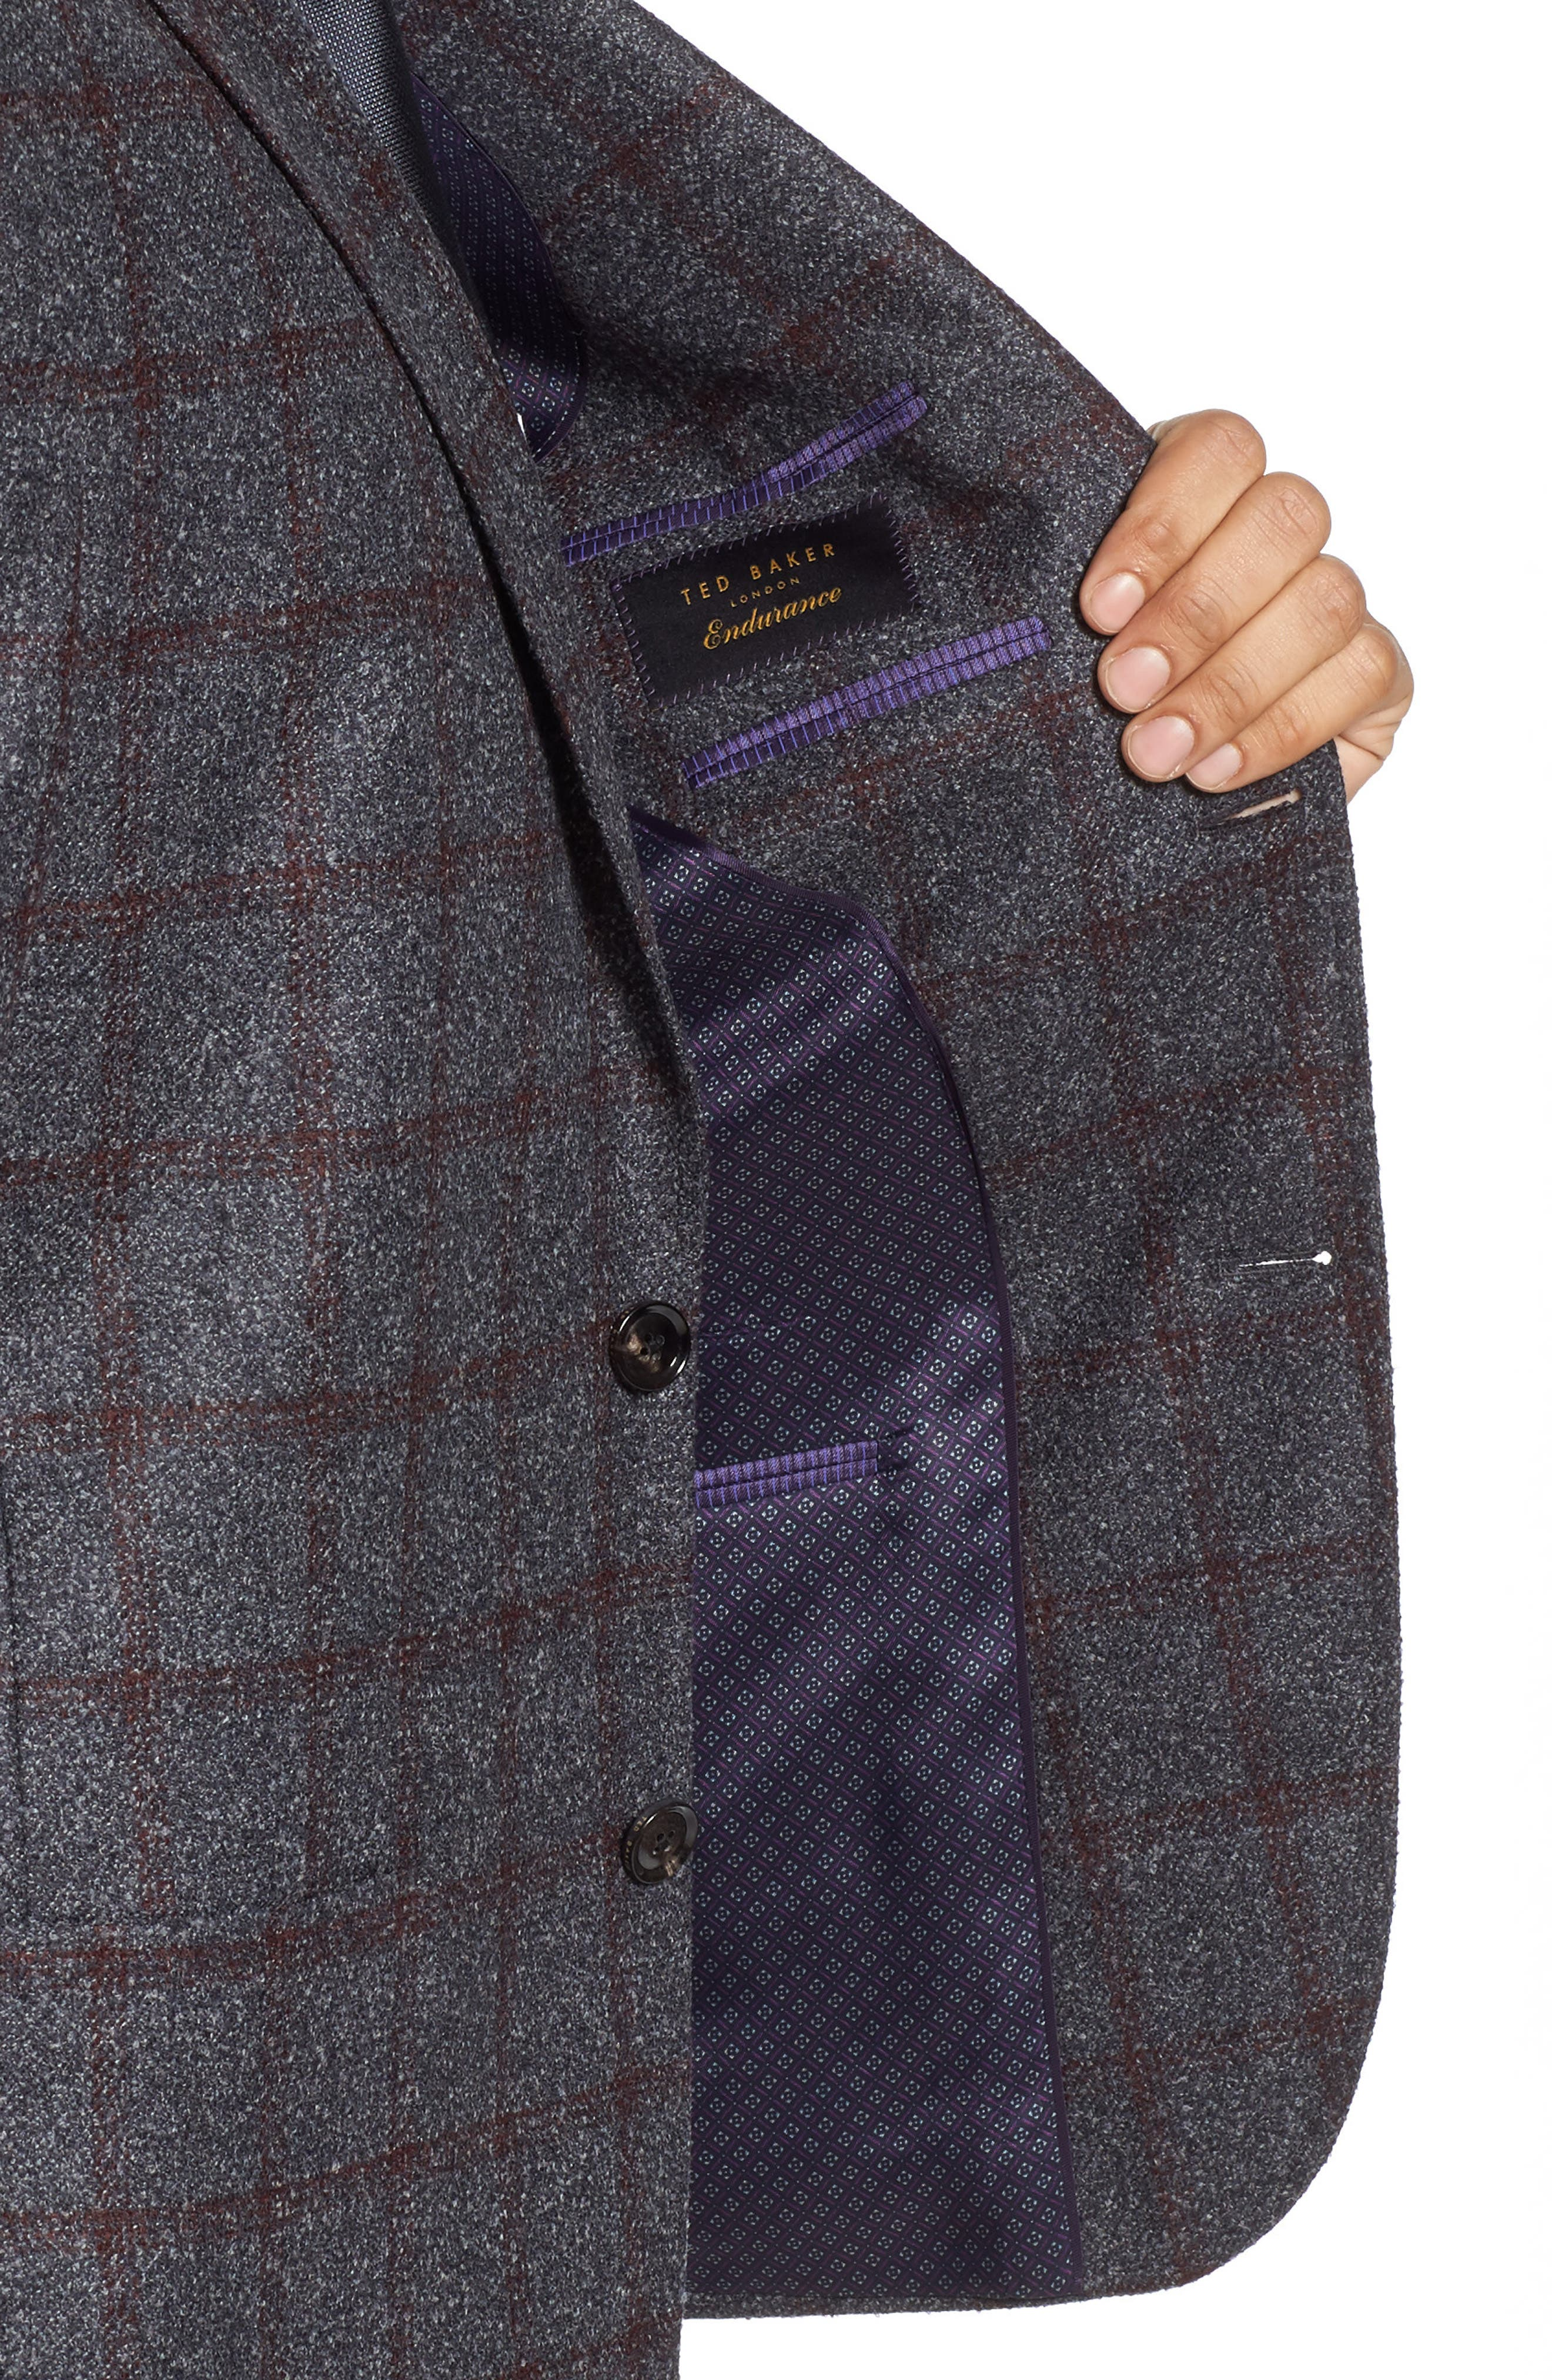 Kyle Trim Fit Windowpane Wool Blend Sport Coat,                             Alternate thumbnail 4, color,                             020